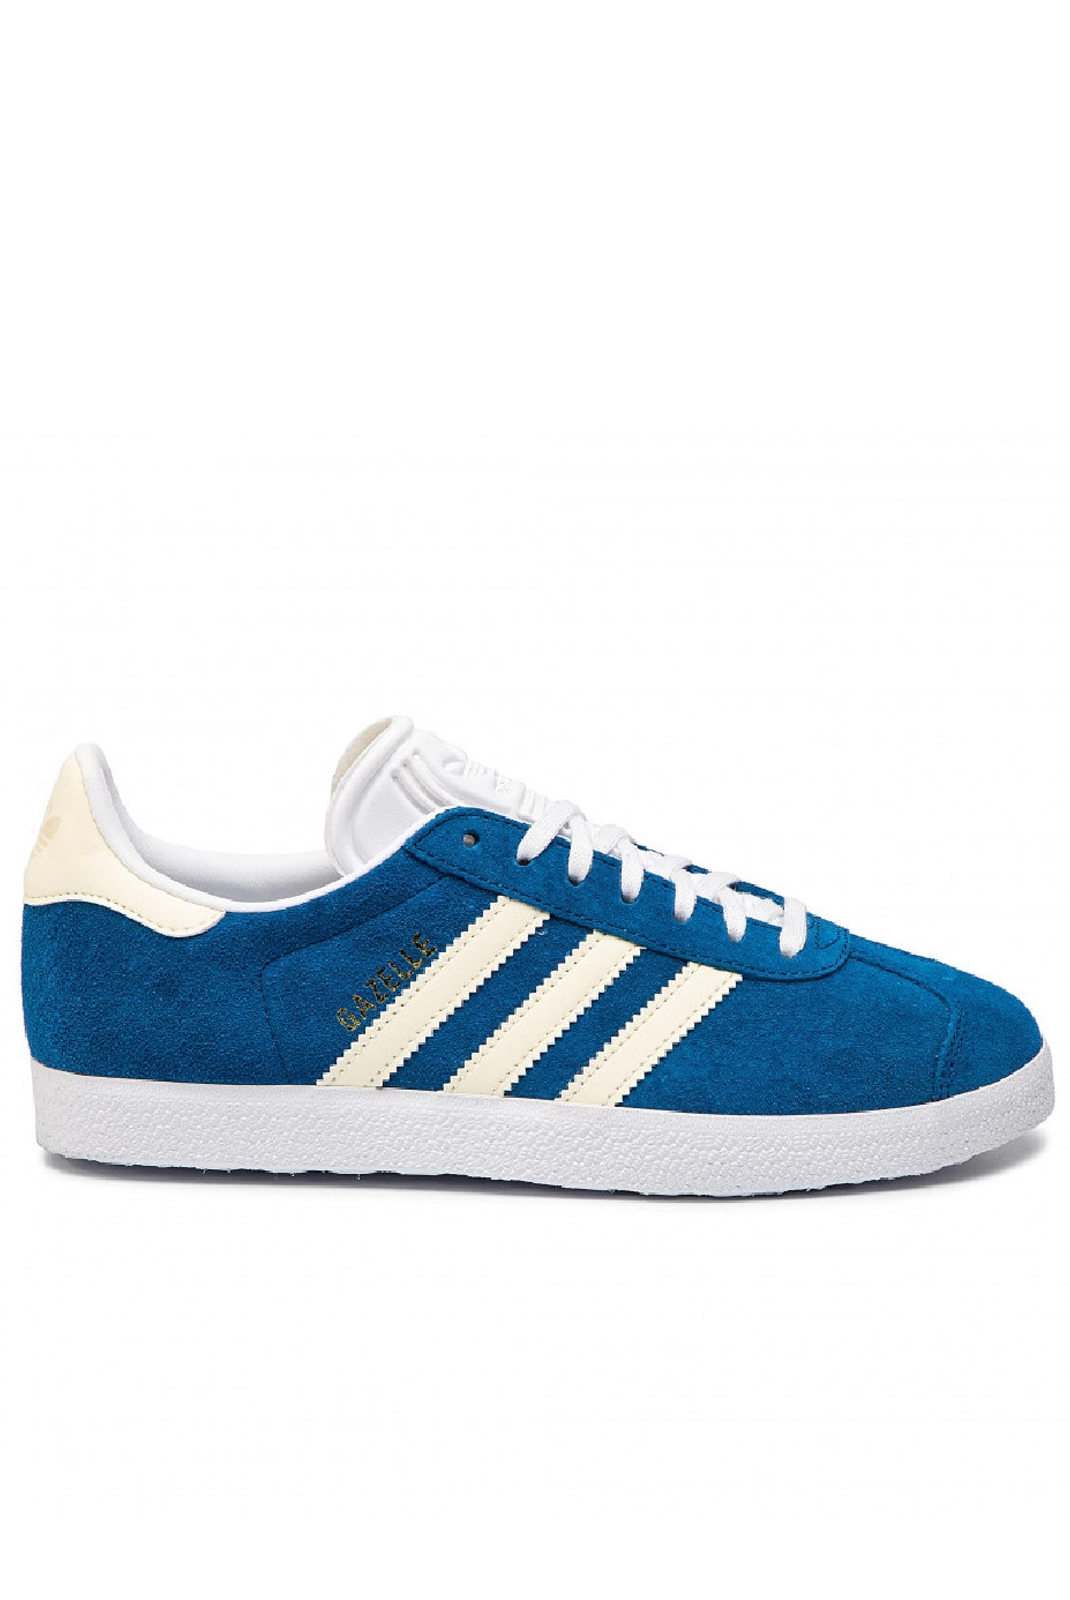 Baskets / Sneakers  Adidas CG6068 GAZELLE W BLEU